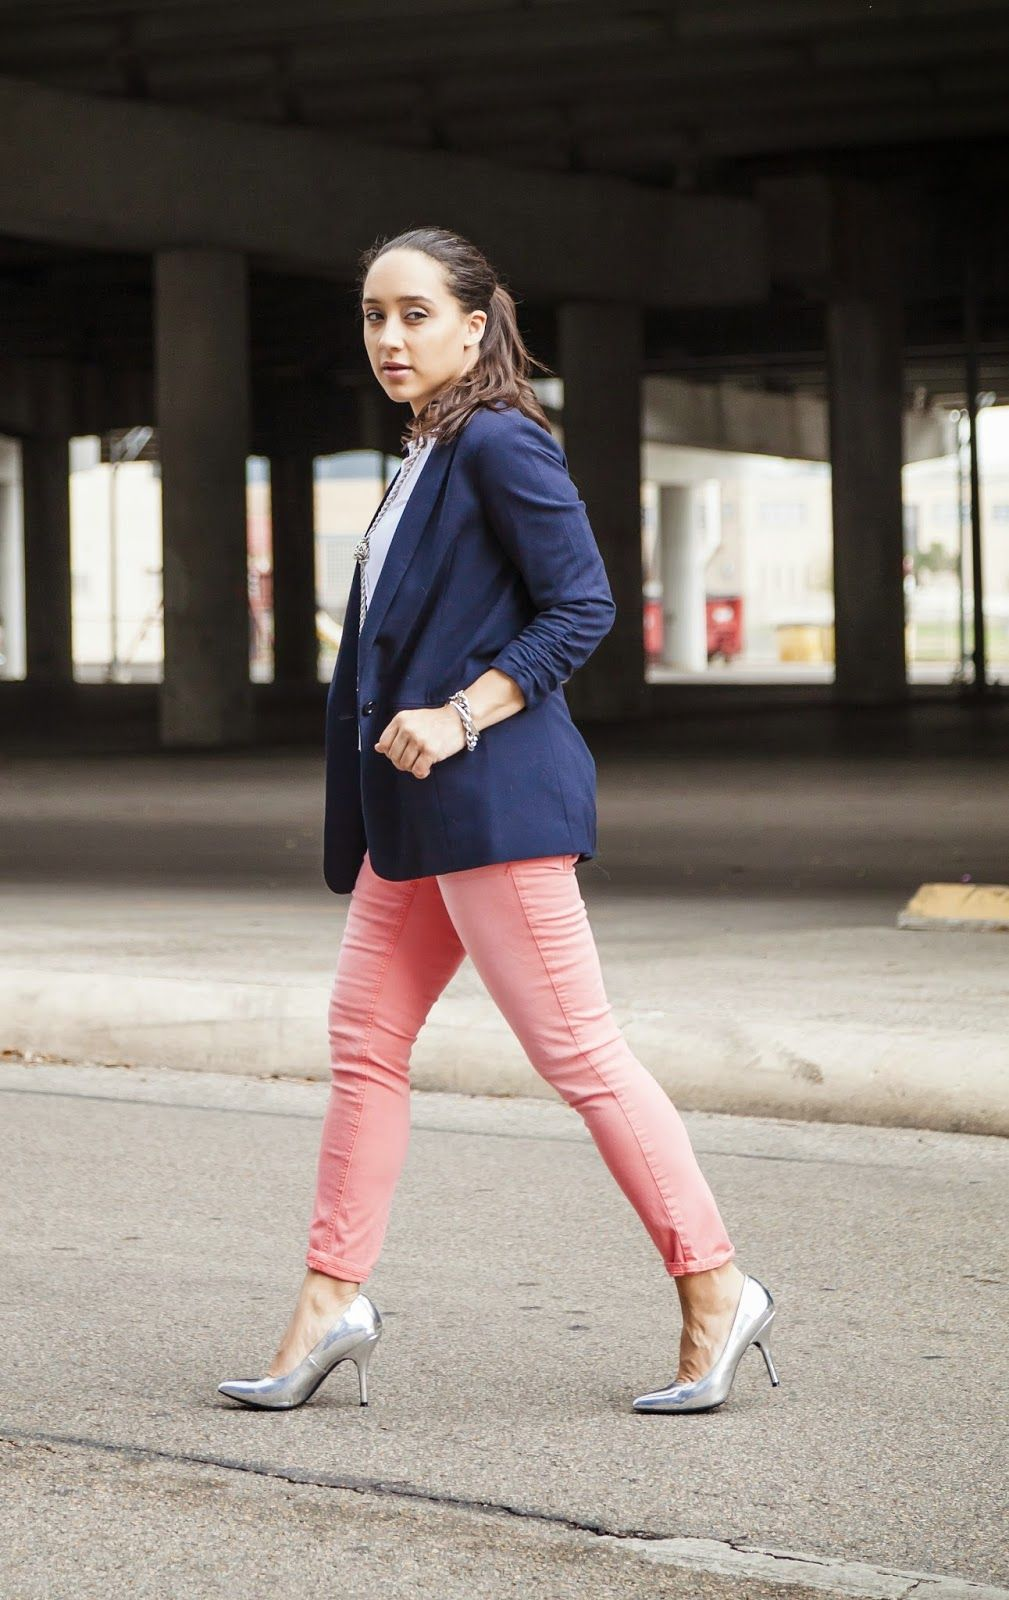 Diary of a Southern Shopper: Pink Jeans @Express / Navy Blazer / Silver Heels @Target